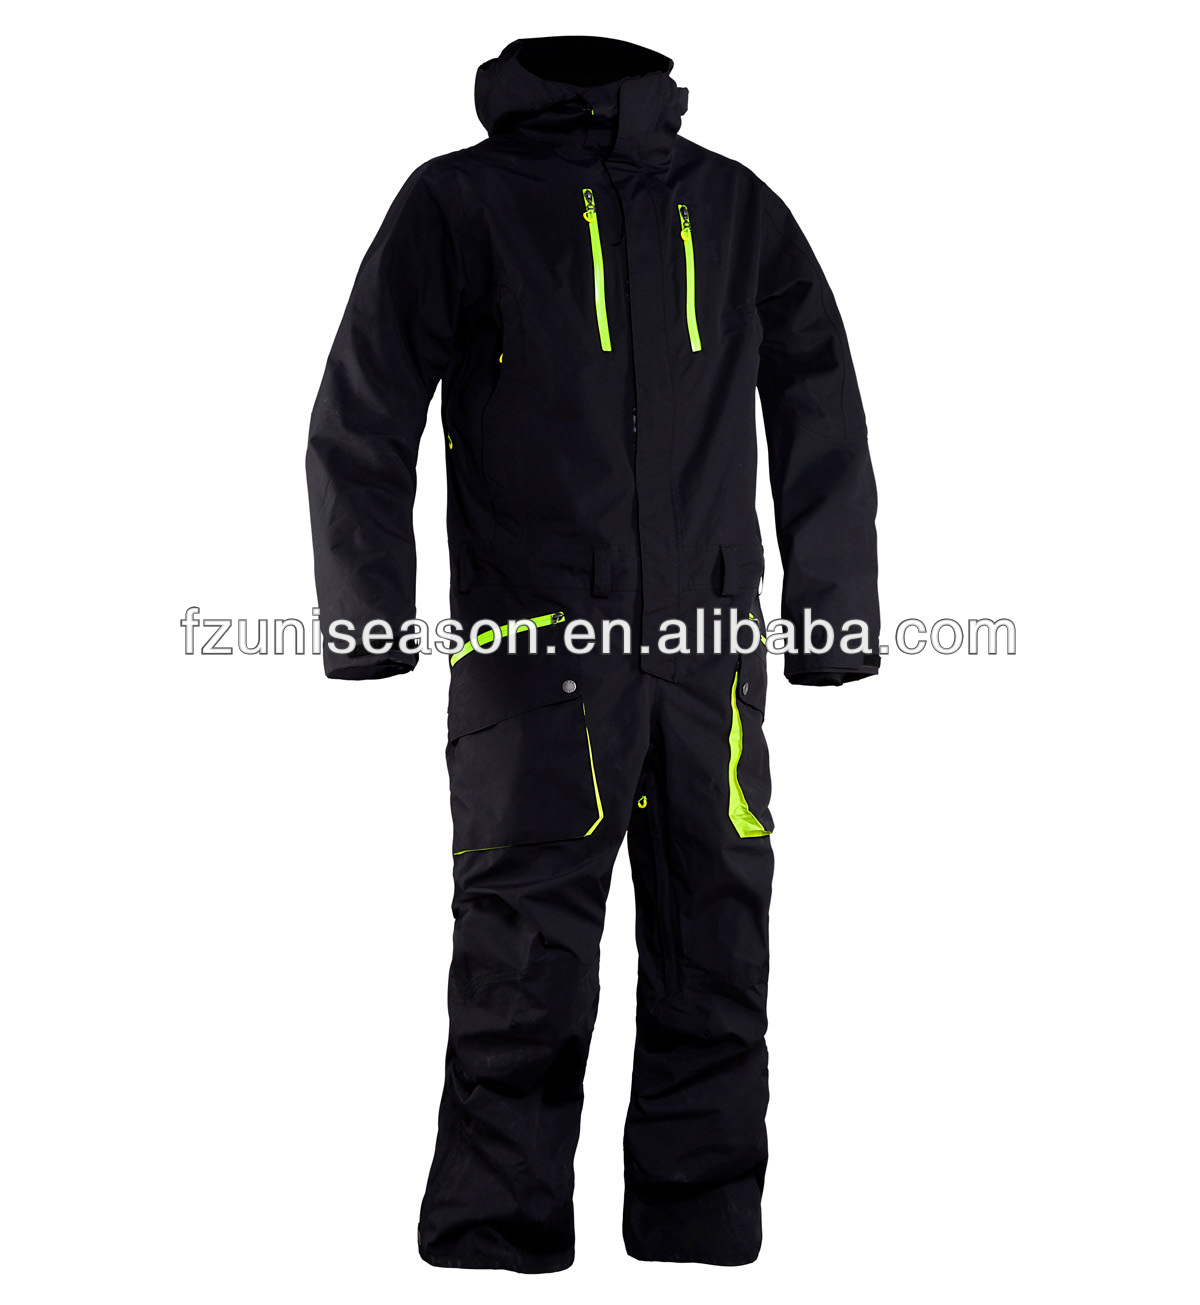 Waterproof one piece snow & ski suits for men